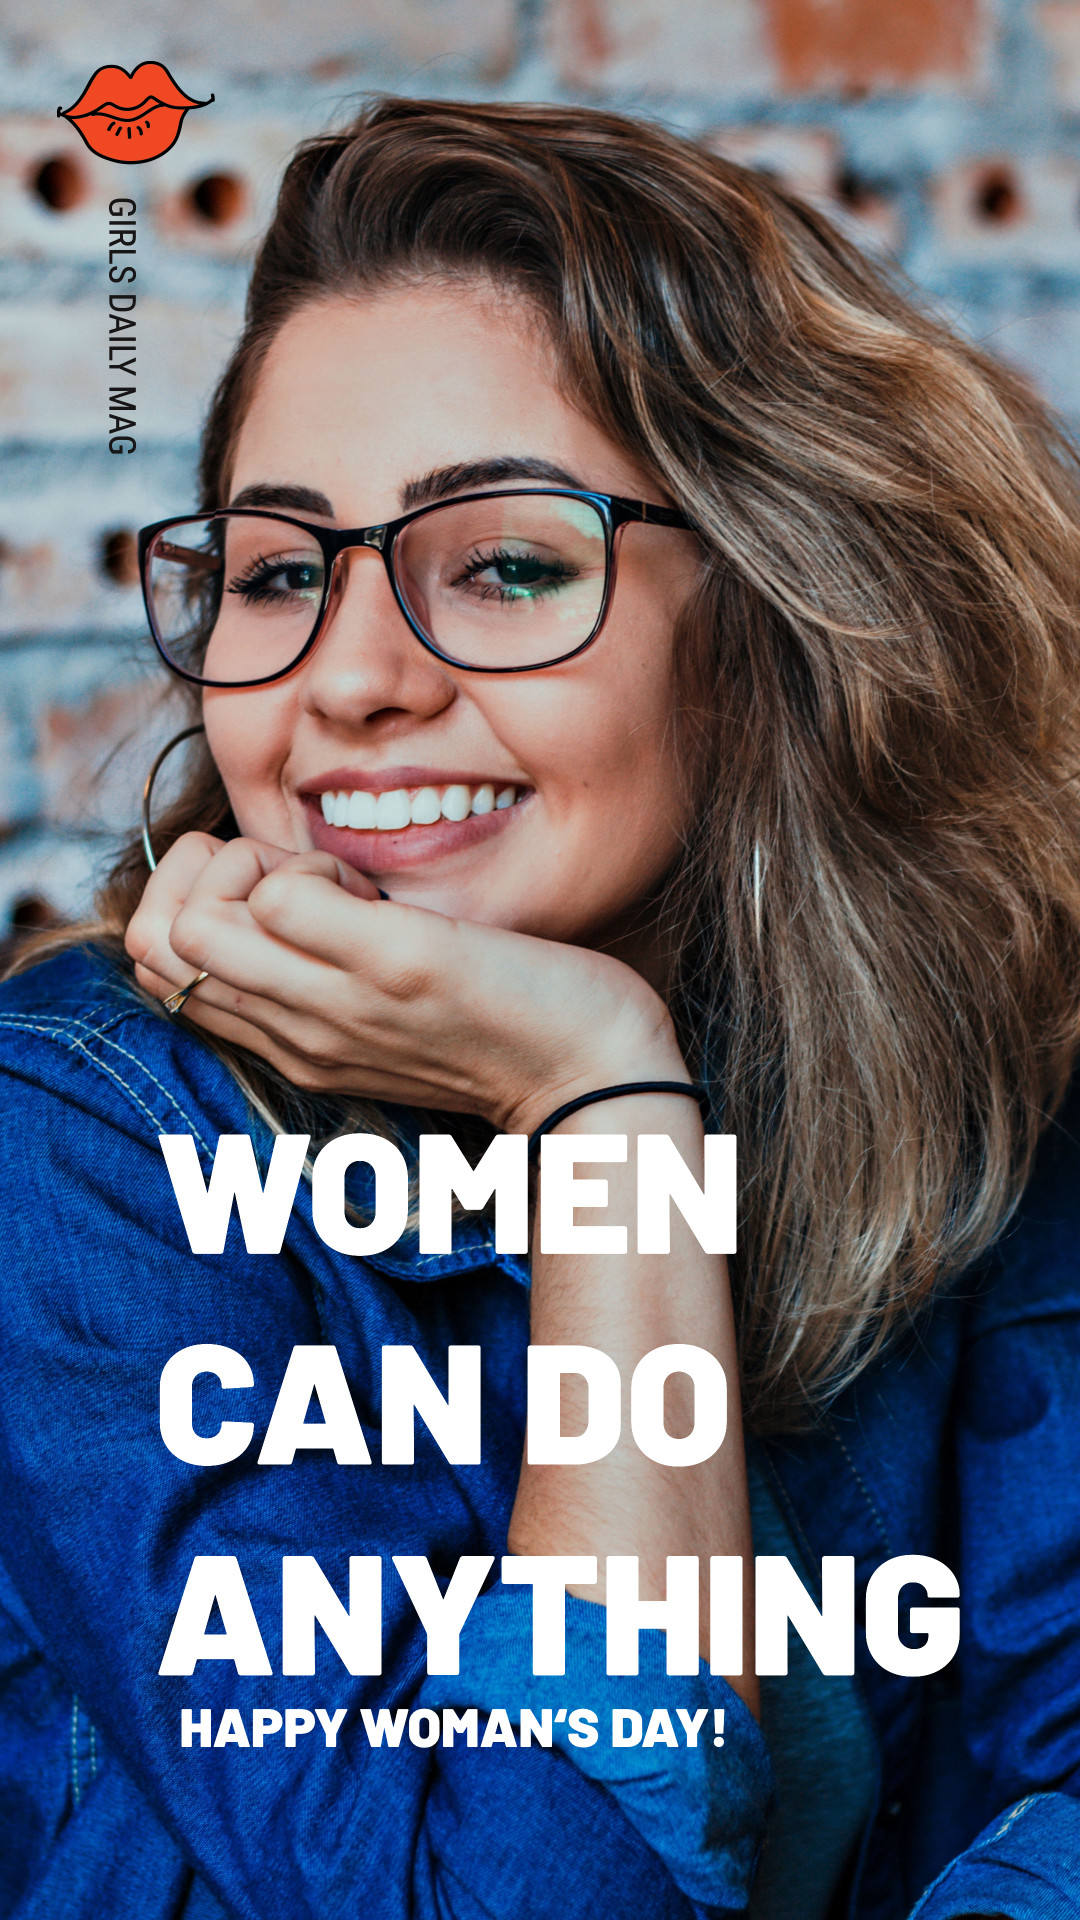 Woman can do anything